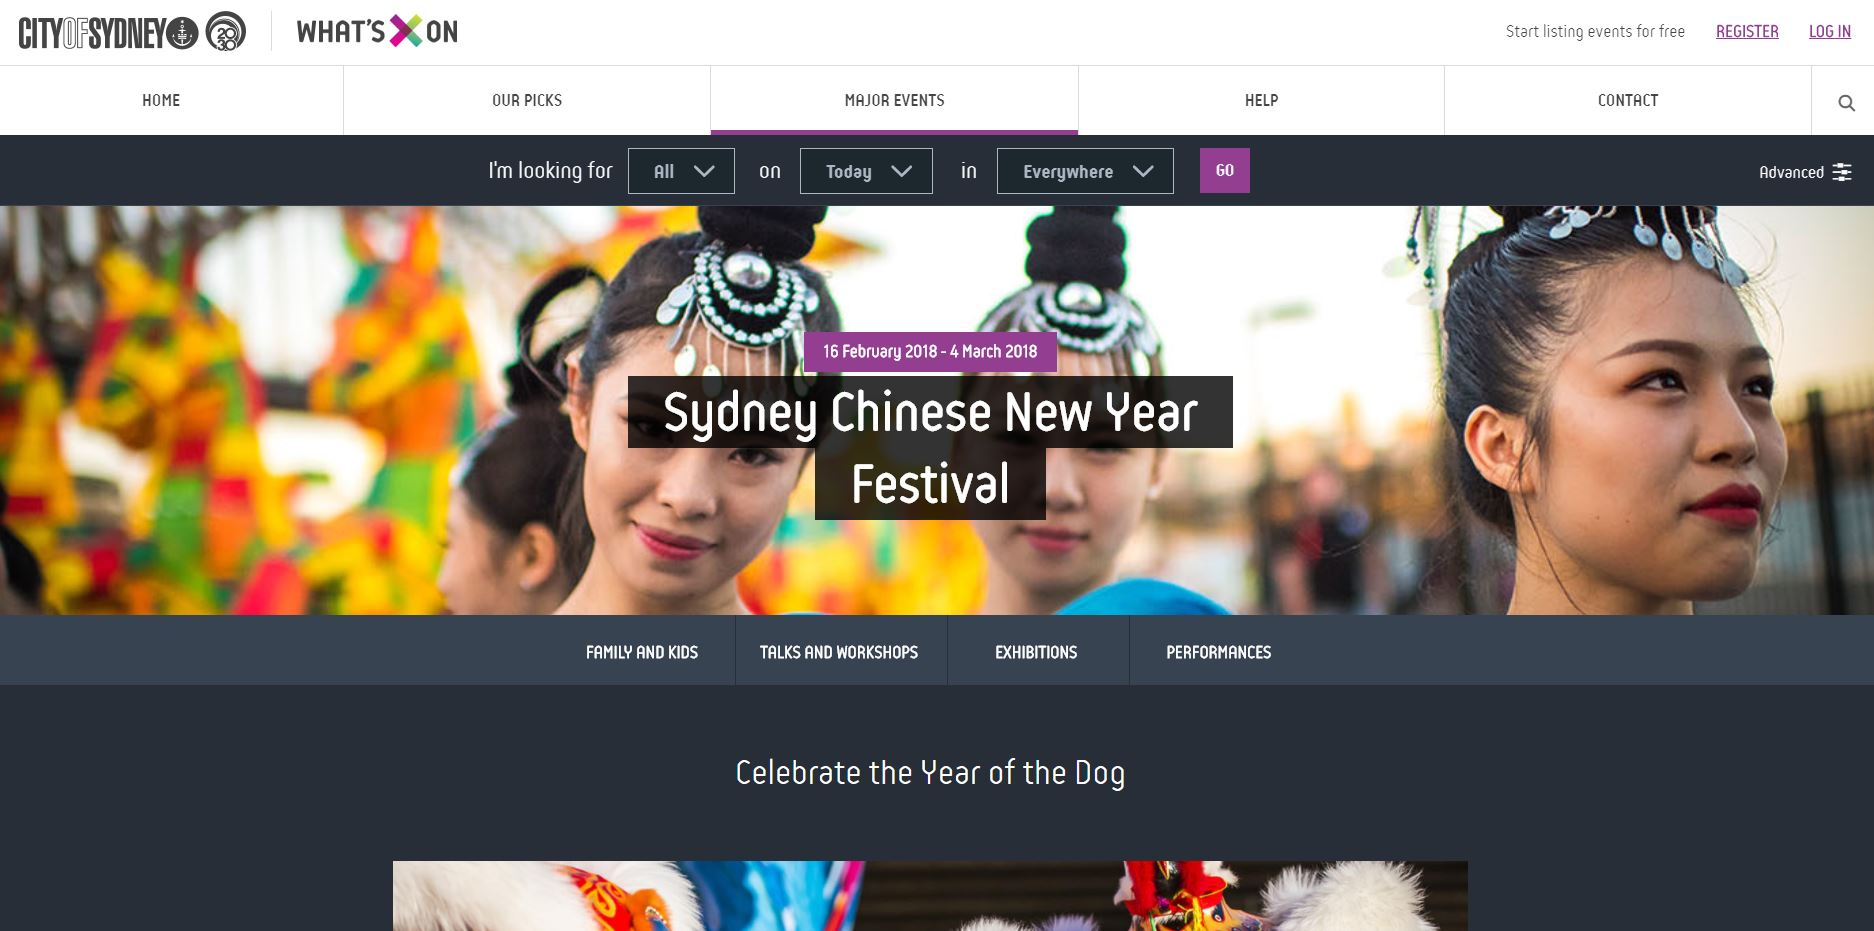 city of sydney Chinese New Year festival